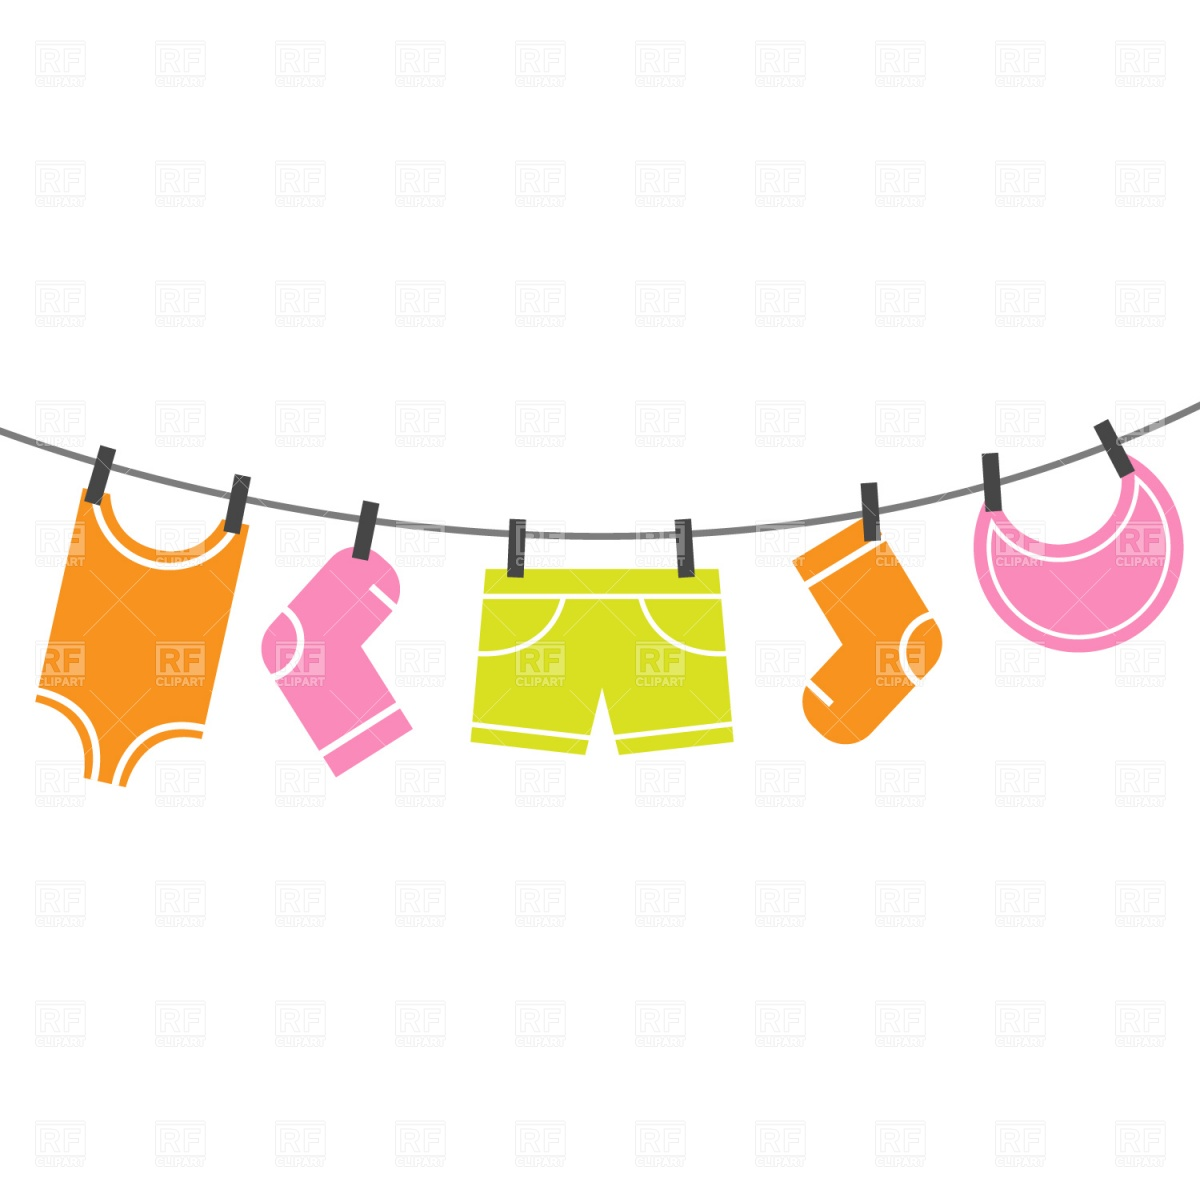 Clothing clipart clothing line. Free images of download